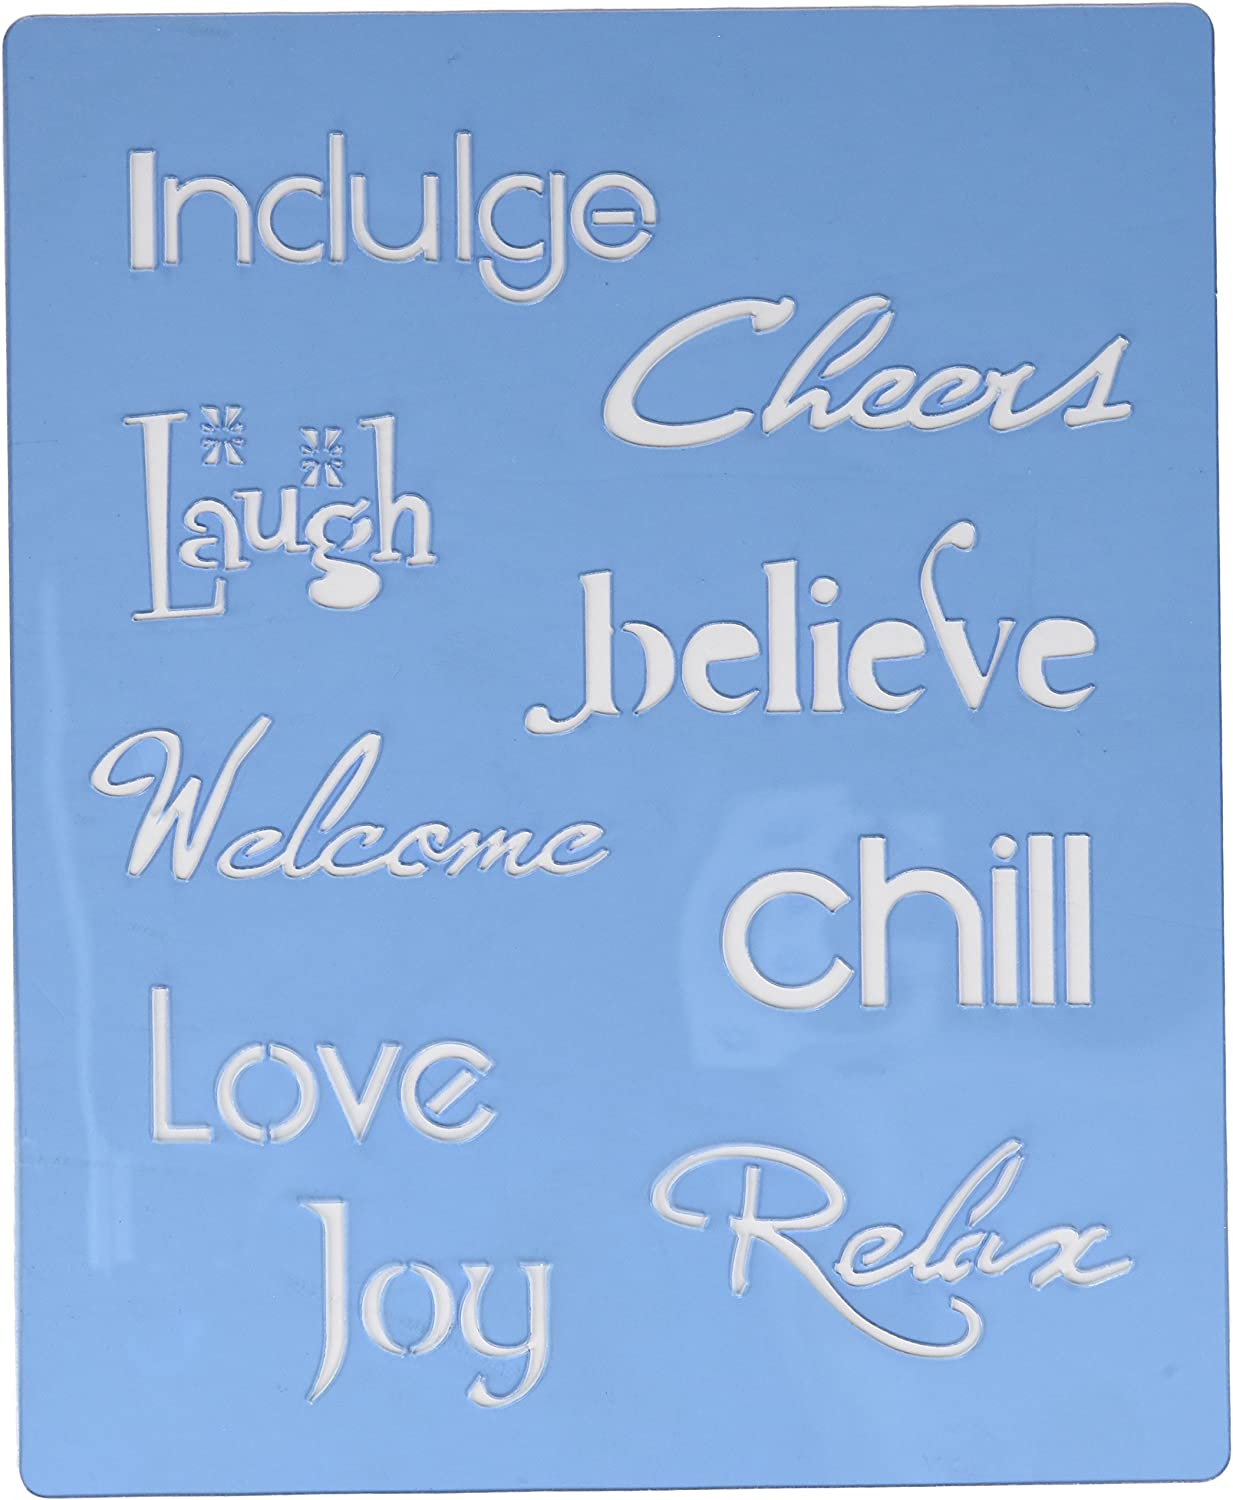 Faux Faux Faux Like a Pro Inspirational Words Stencil, Laugh Love Joy Believe Indulge, 5.5 by 7-Inch, Single Overlay by Faux Like a Pro B006PWNPWC   Sorgfältig ausgewählte Materialien  befc85